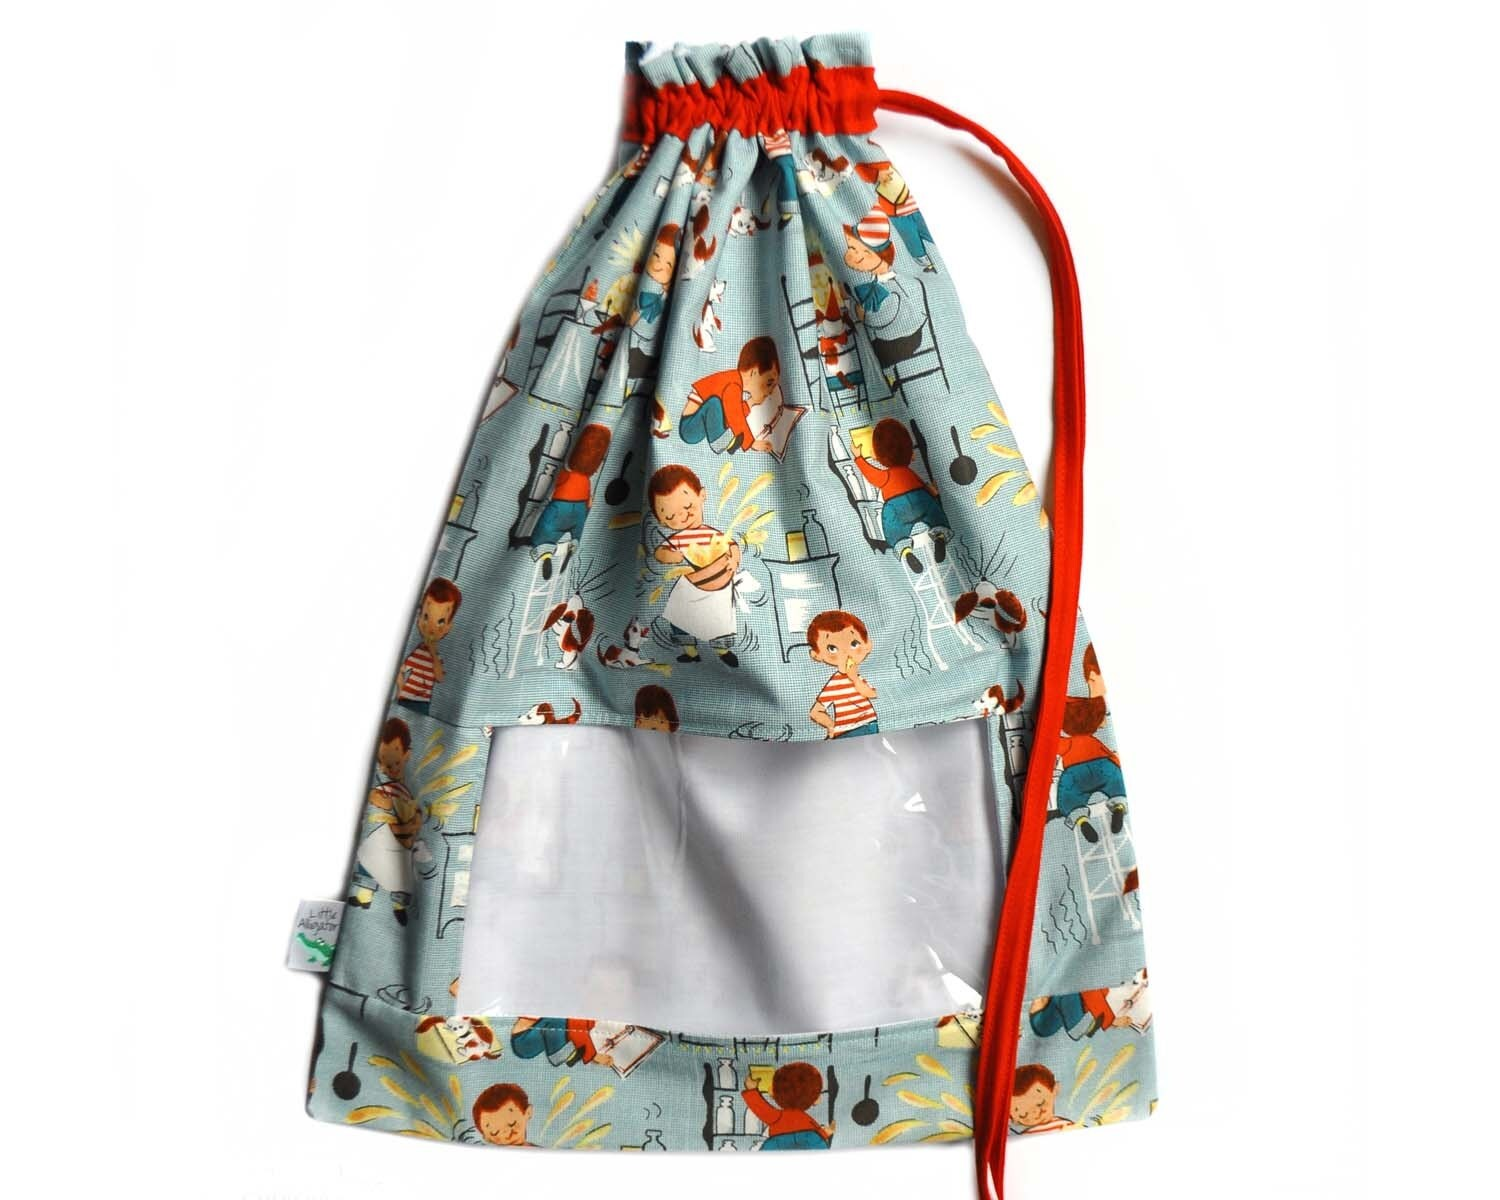 Bag Of Toys : Toy bag drawstring vinyl window sack